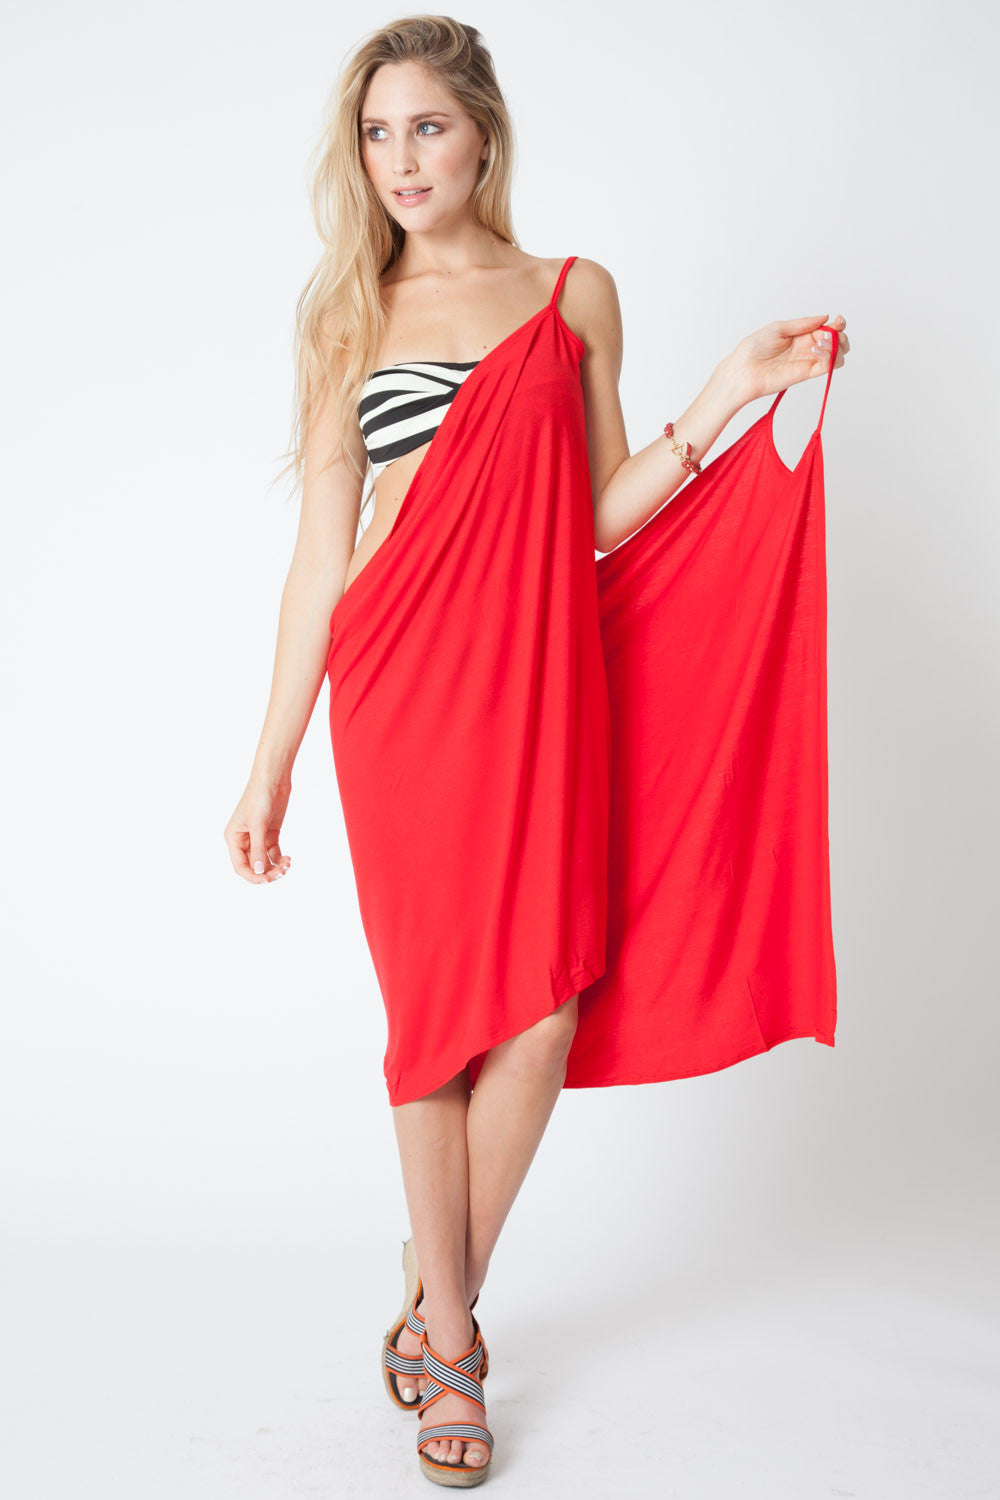 Convertible Beach Wrap Dress in Scarlet